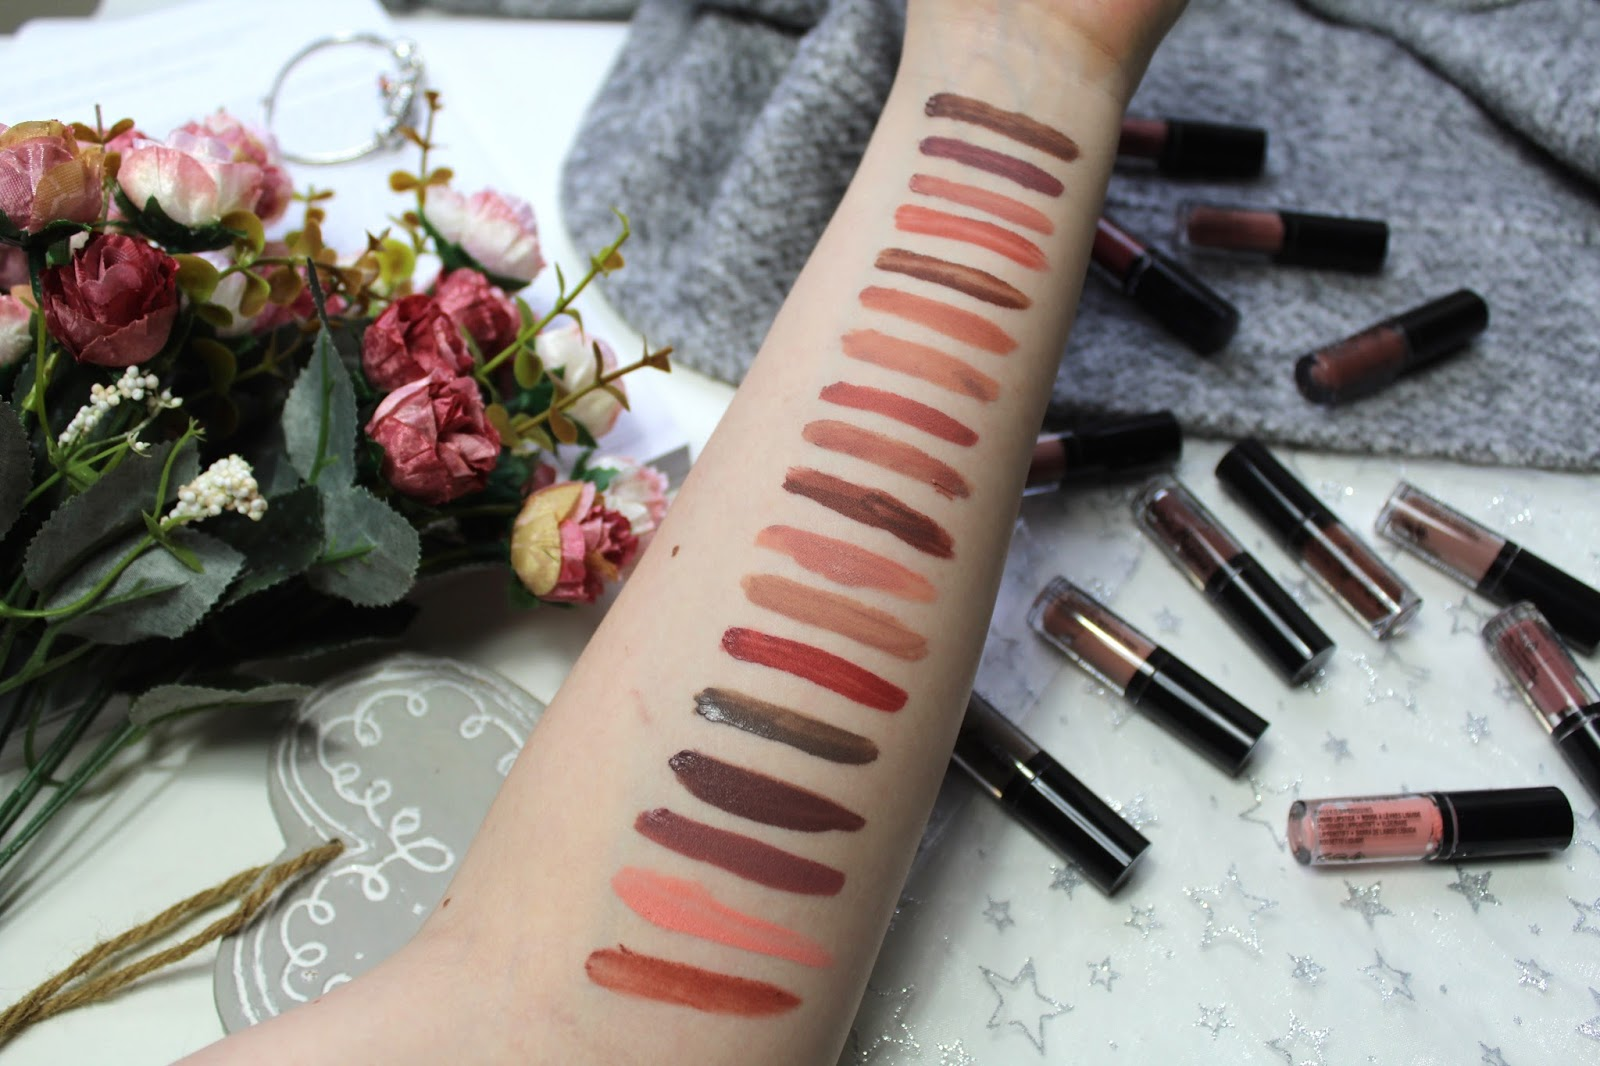 NYX PROFESSIONAL MAKEUP Lingerie Vault  issybellefox review